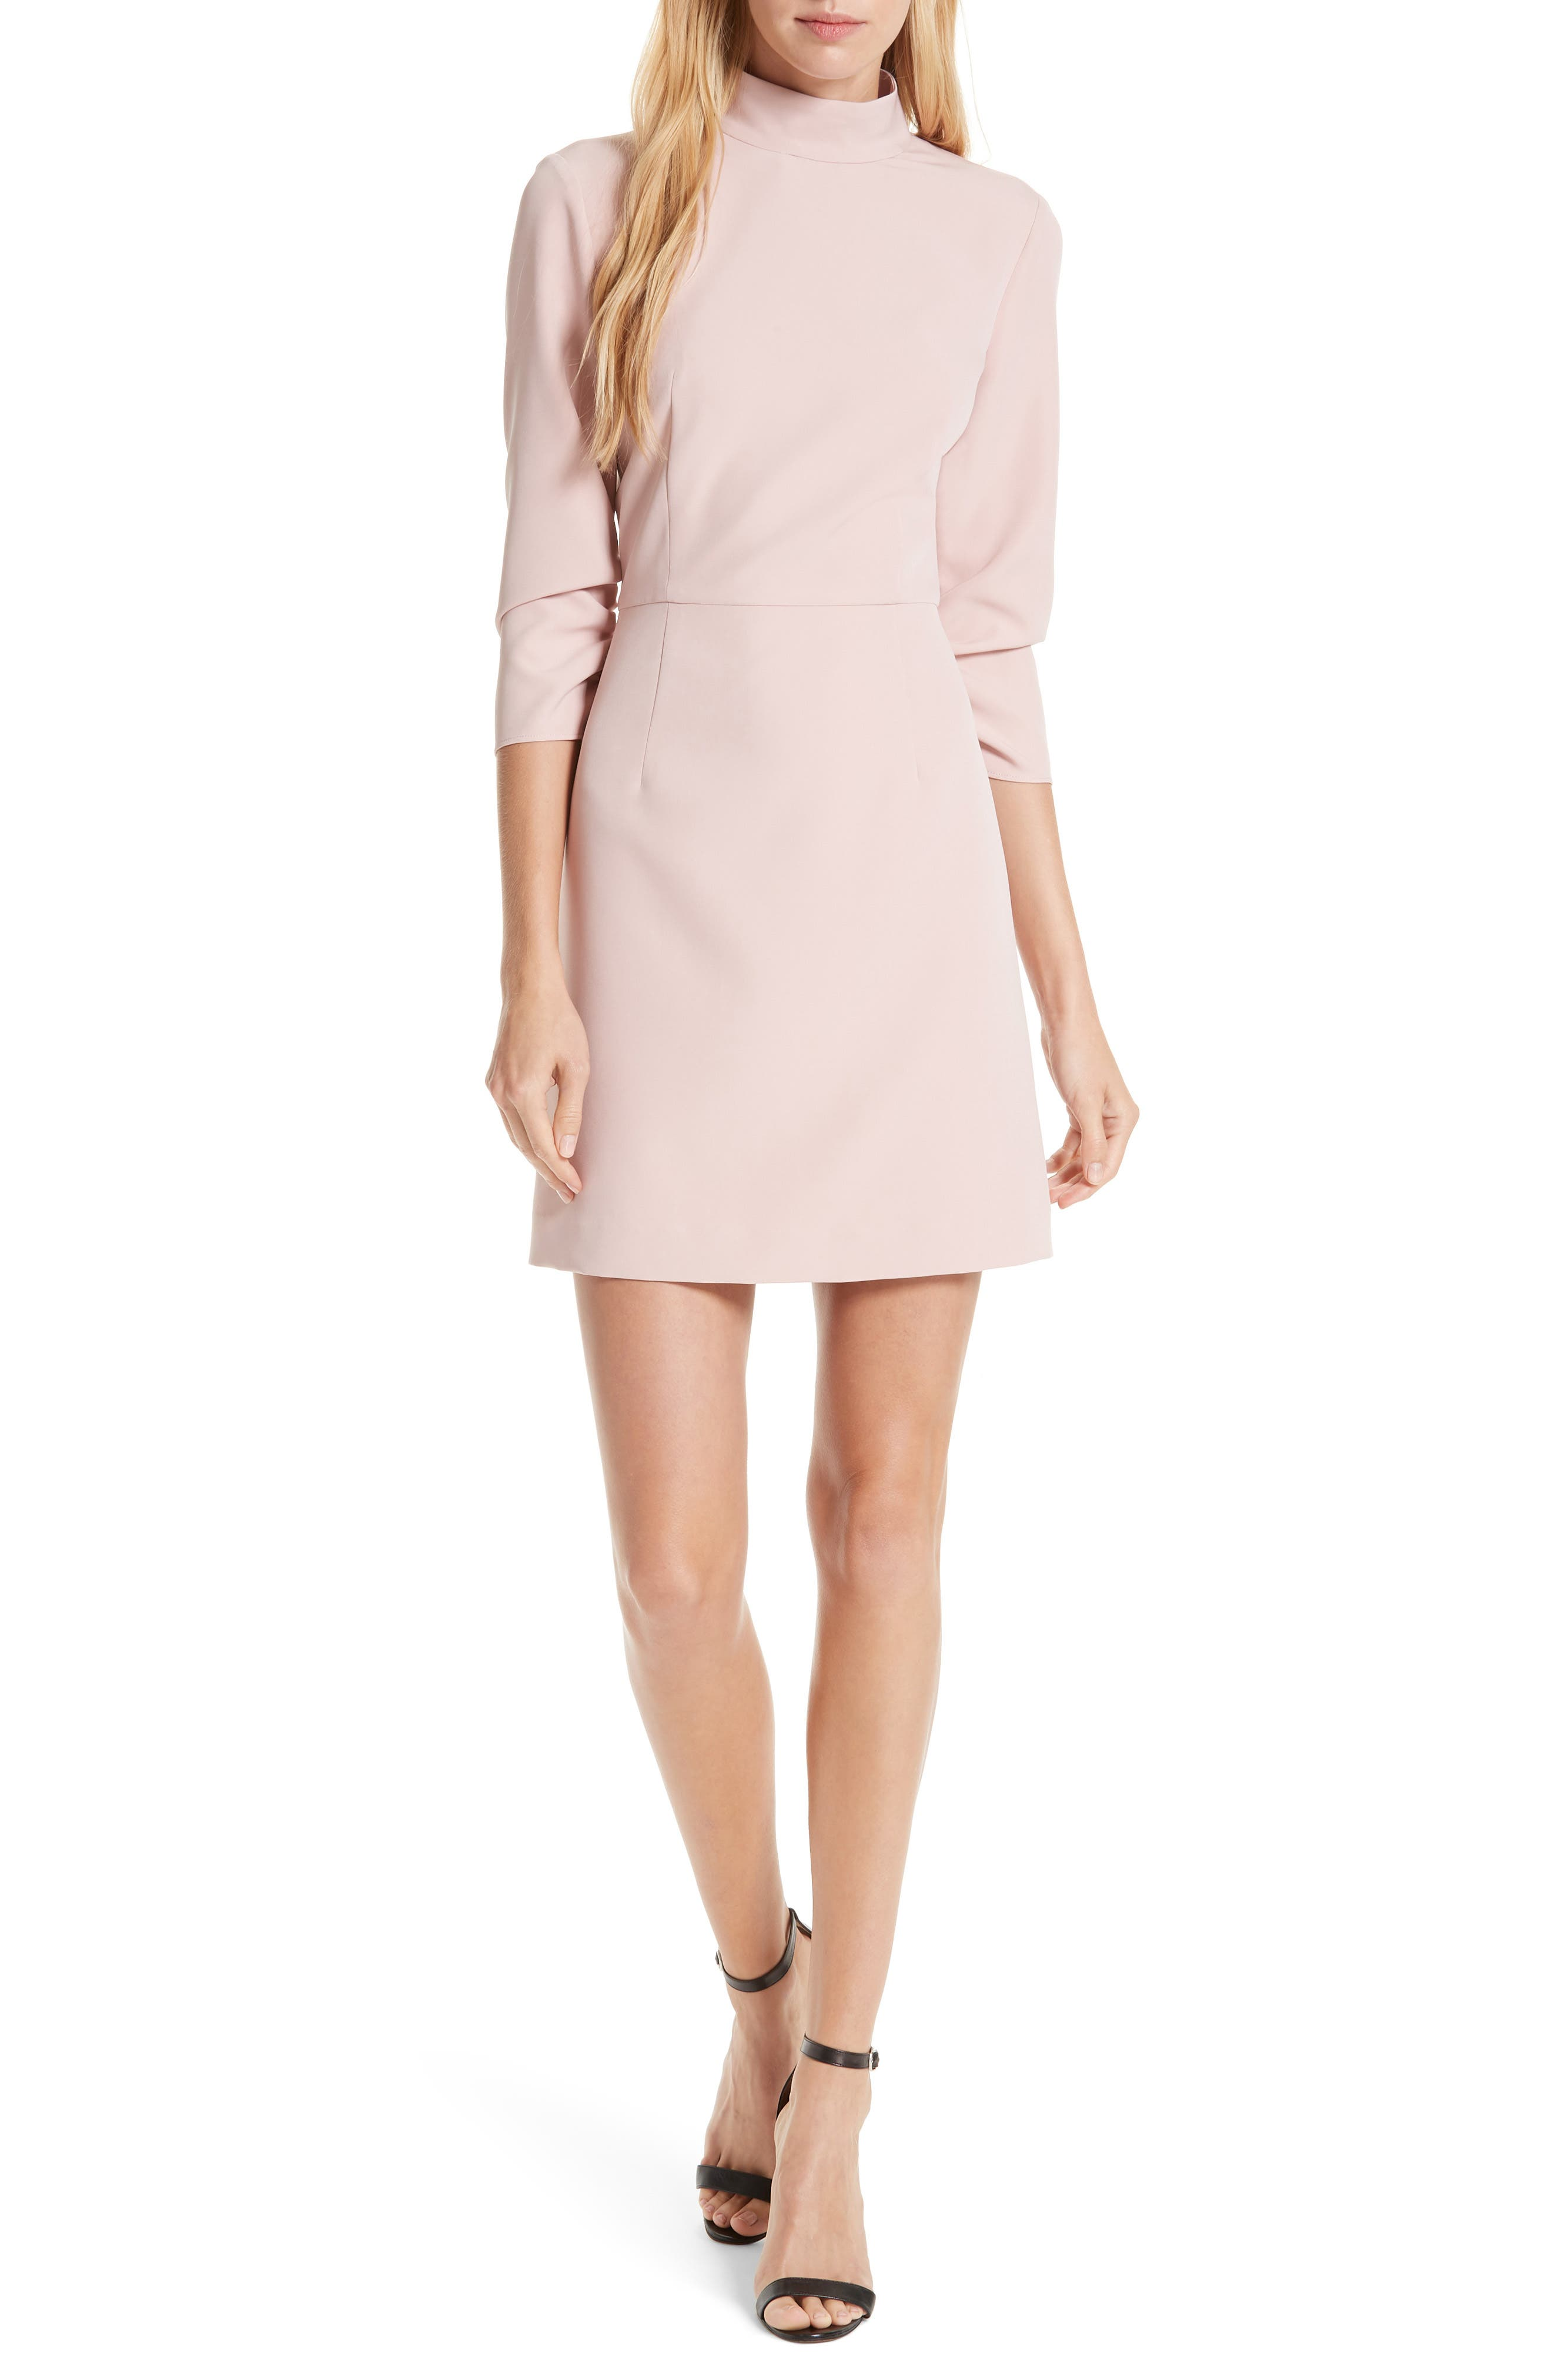 Milly Kendall Mock Neck Dress, Pink